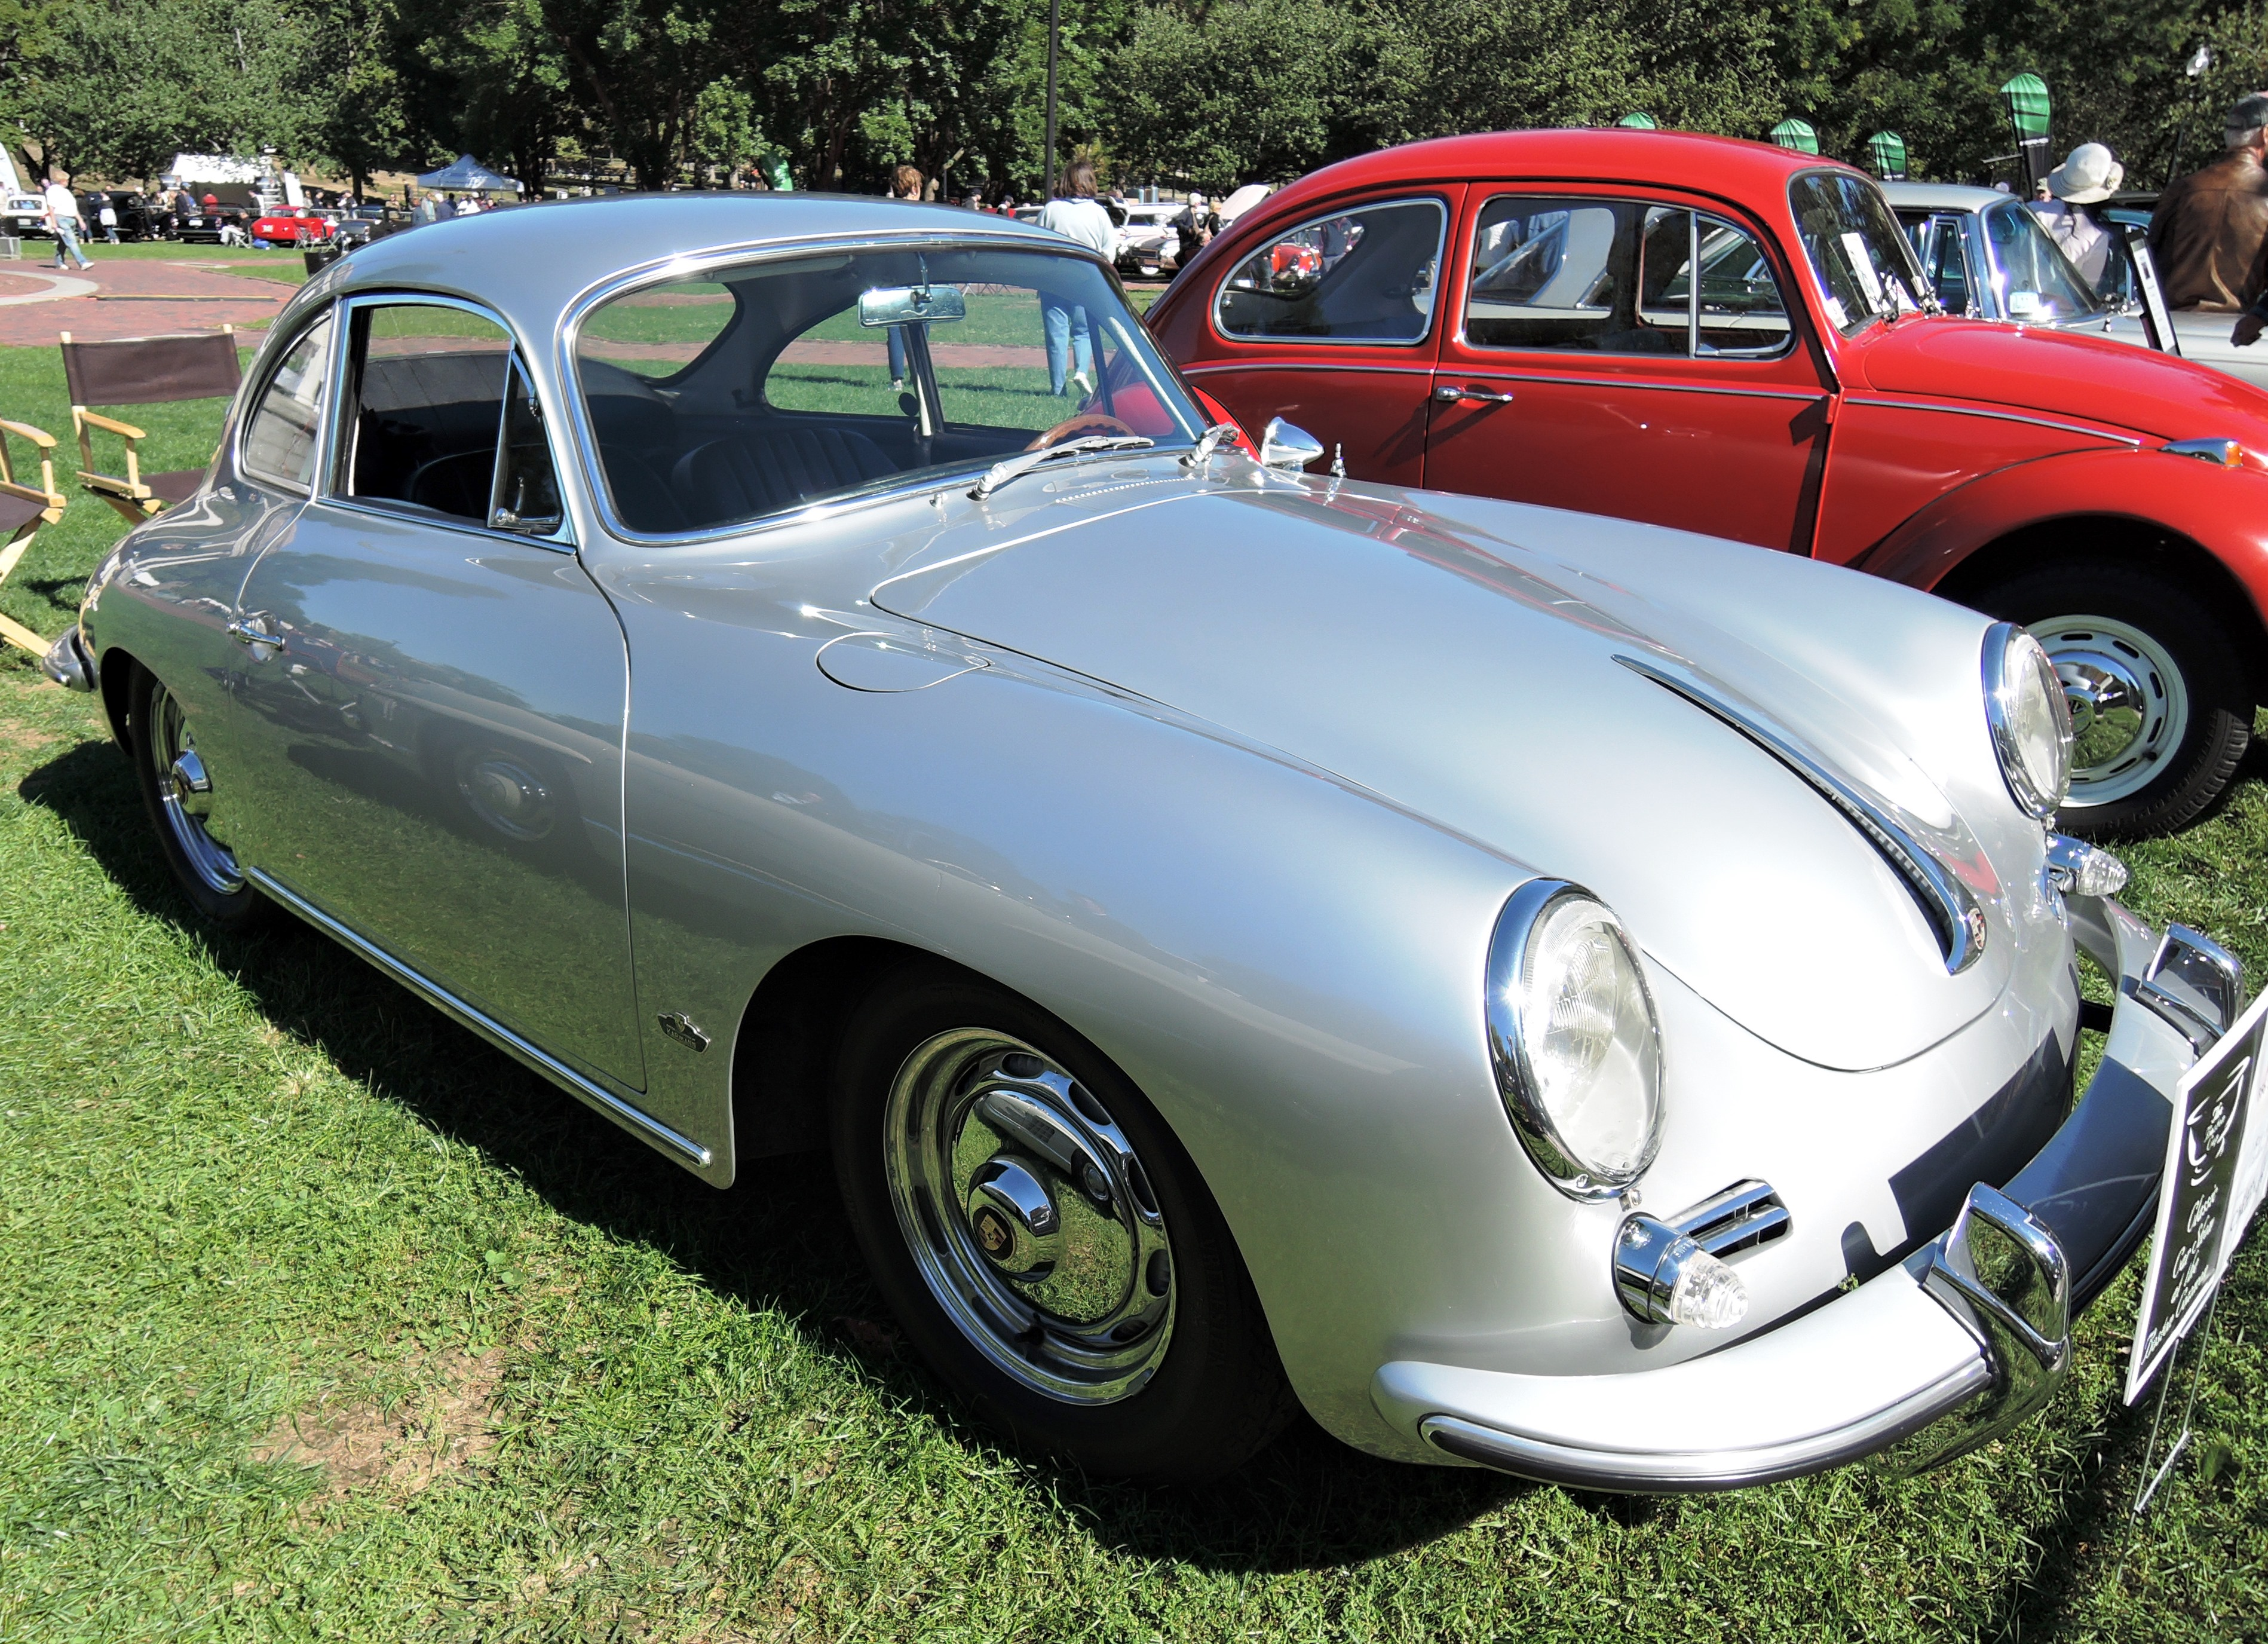 silver 1963 Porsche 356 S Coupe T6B - The Boston Cup on Boston Common